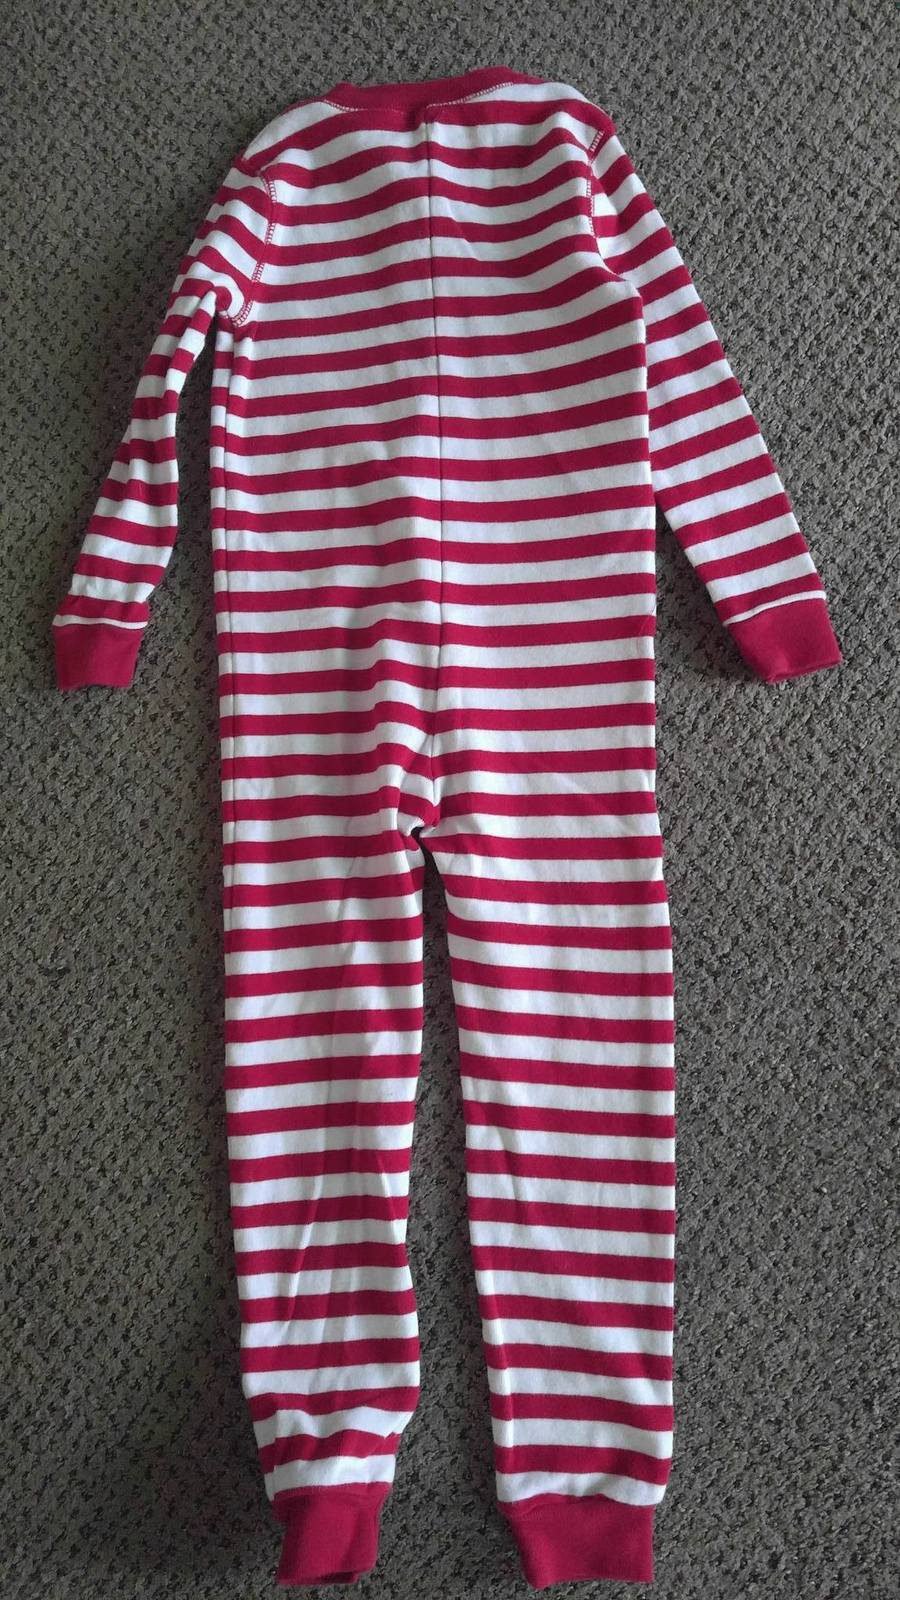 You searched for: christmas pajamas! Etsy is the home to thousands of handmade, vintage, and one-of-a-kind products and gifts related to your search. No matter what you're looking for or where you are in the world, our global marketplace of sellers can help you find unique and affordable options. Let's get started!